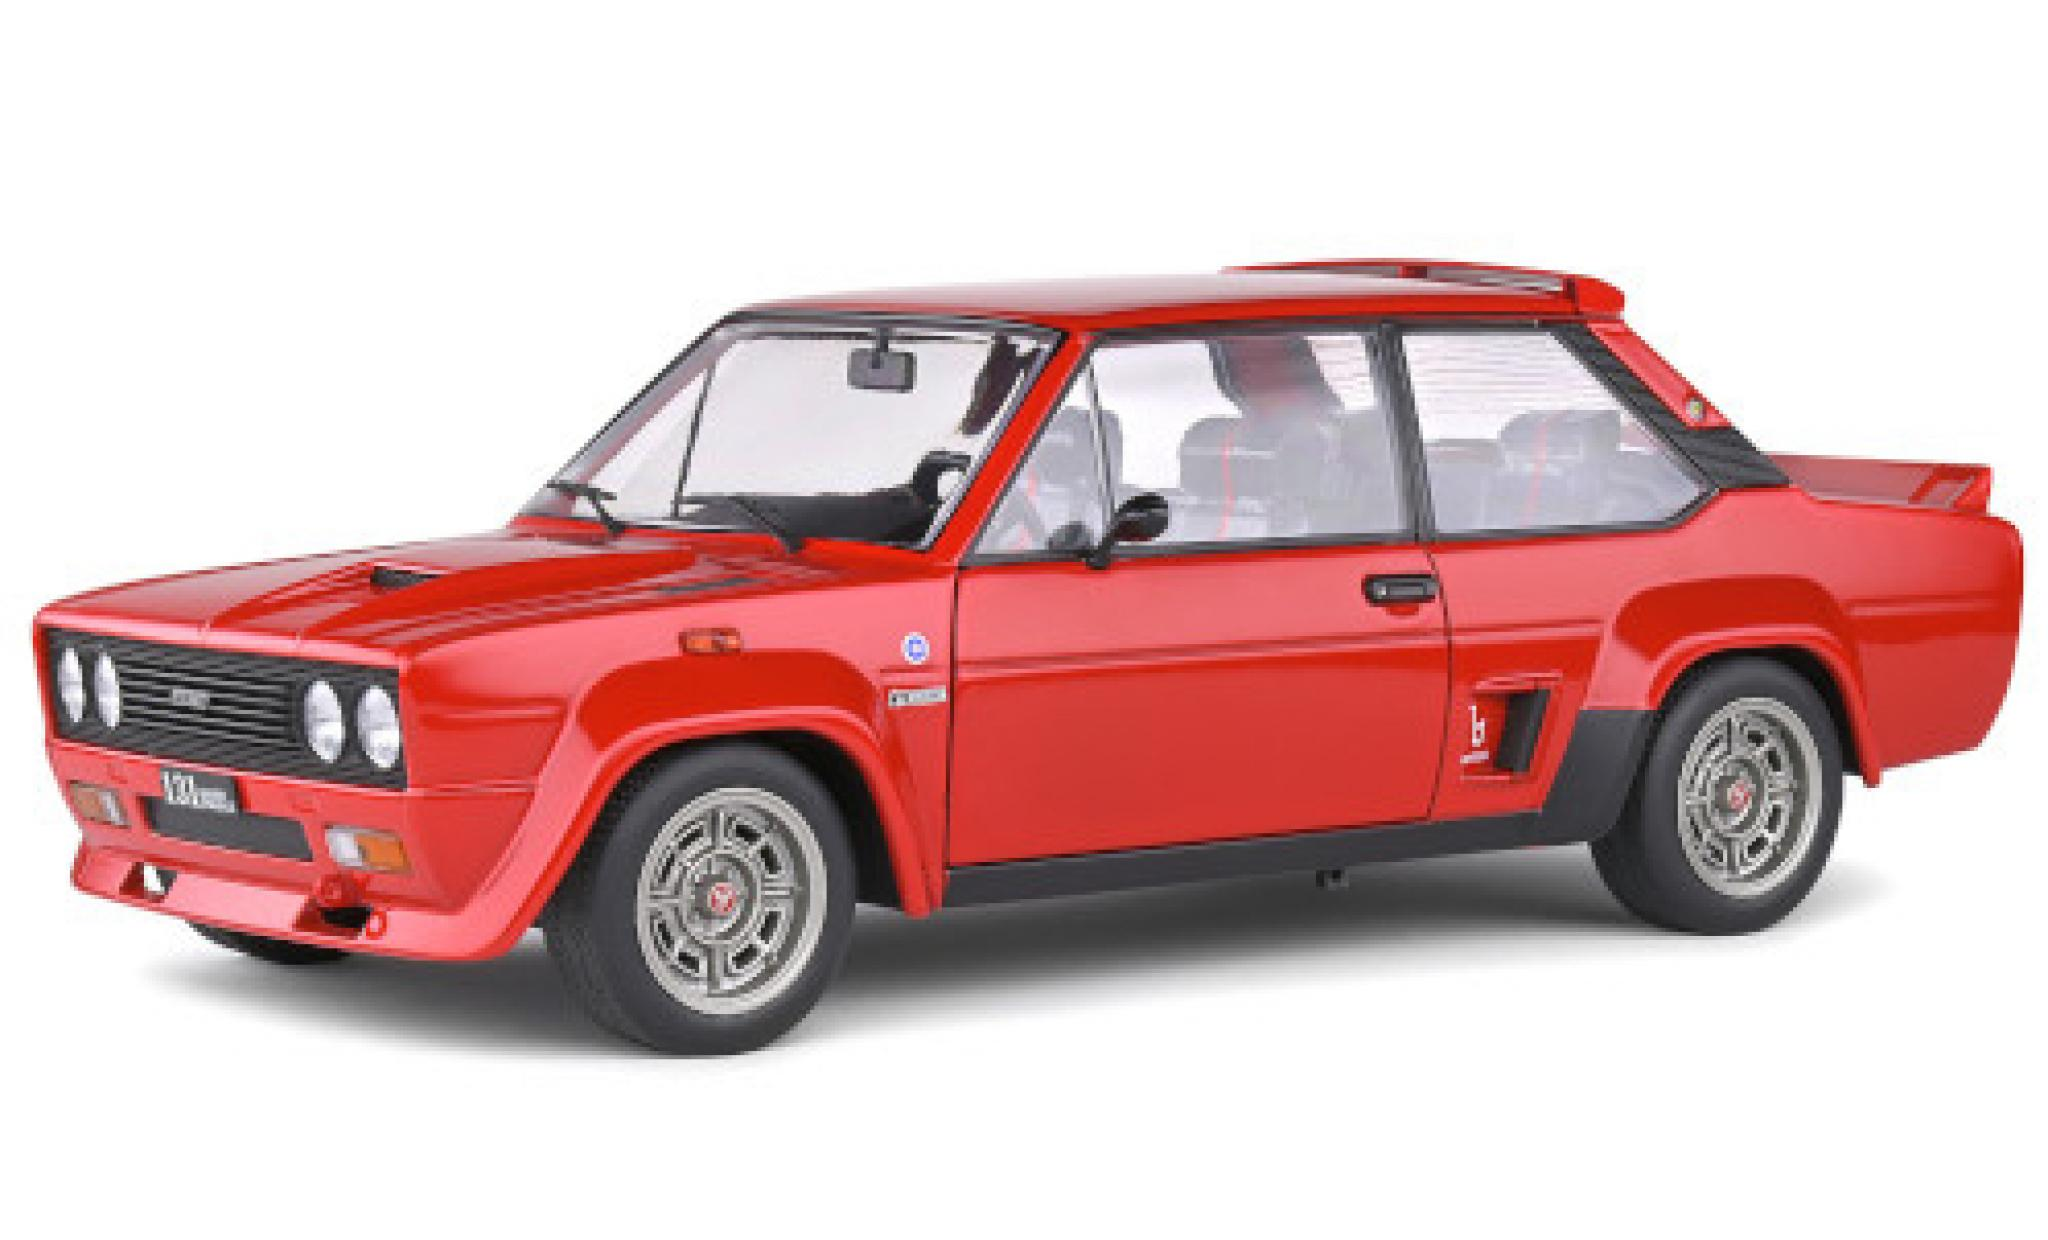 Fiat 131 1/18 Solido Abarth red 1980